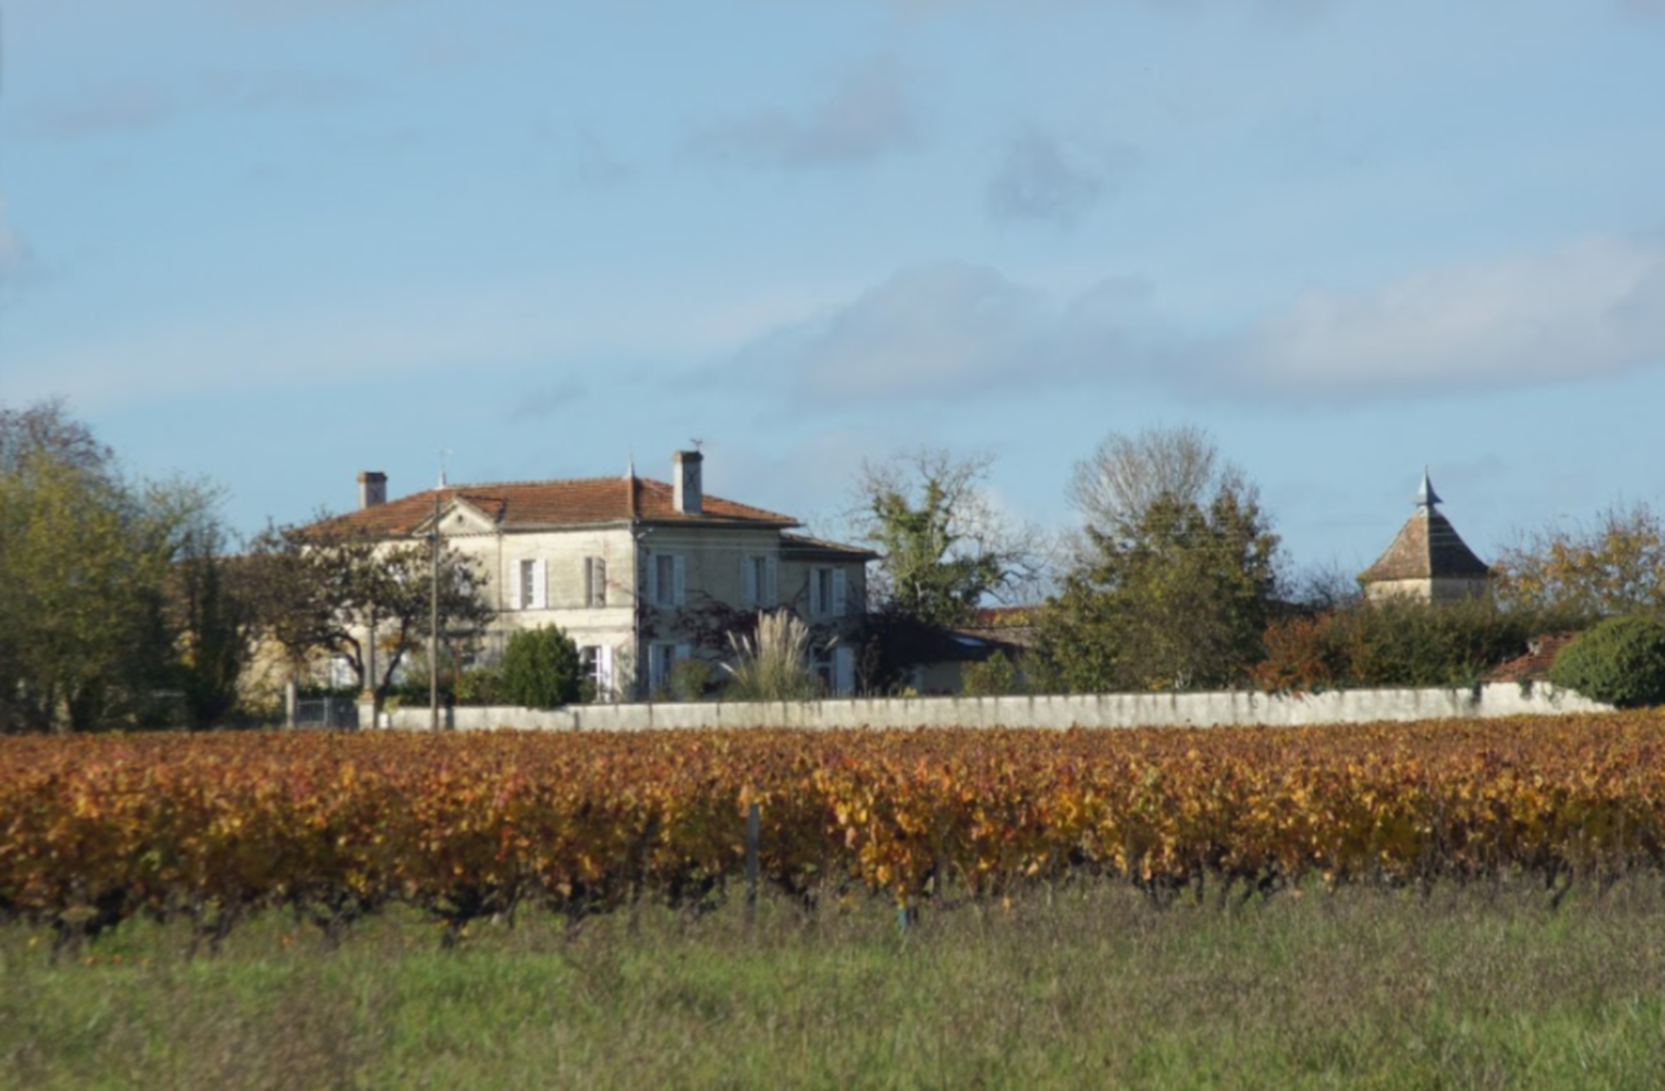 A tree in front of a house at Coté Bordeaux.